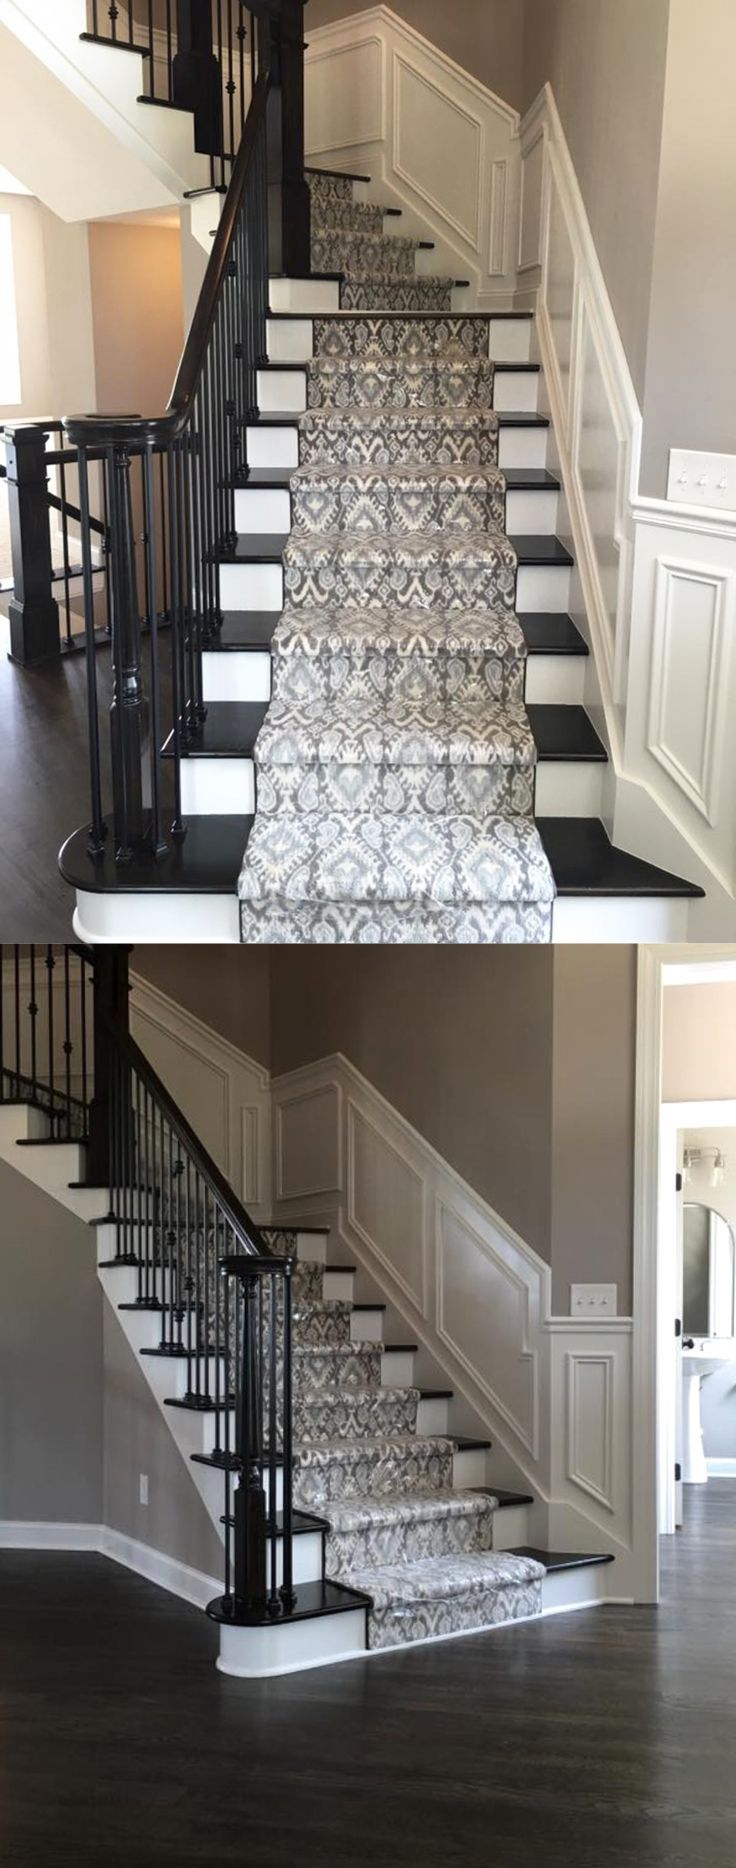 Best 25 Carpet Stair Runners Ideas On Pinterest: The 25+ Best Patterned Carpet Ideas On Pinterest